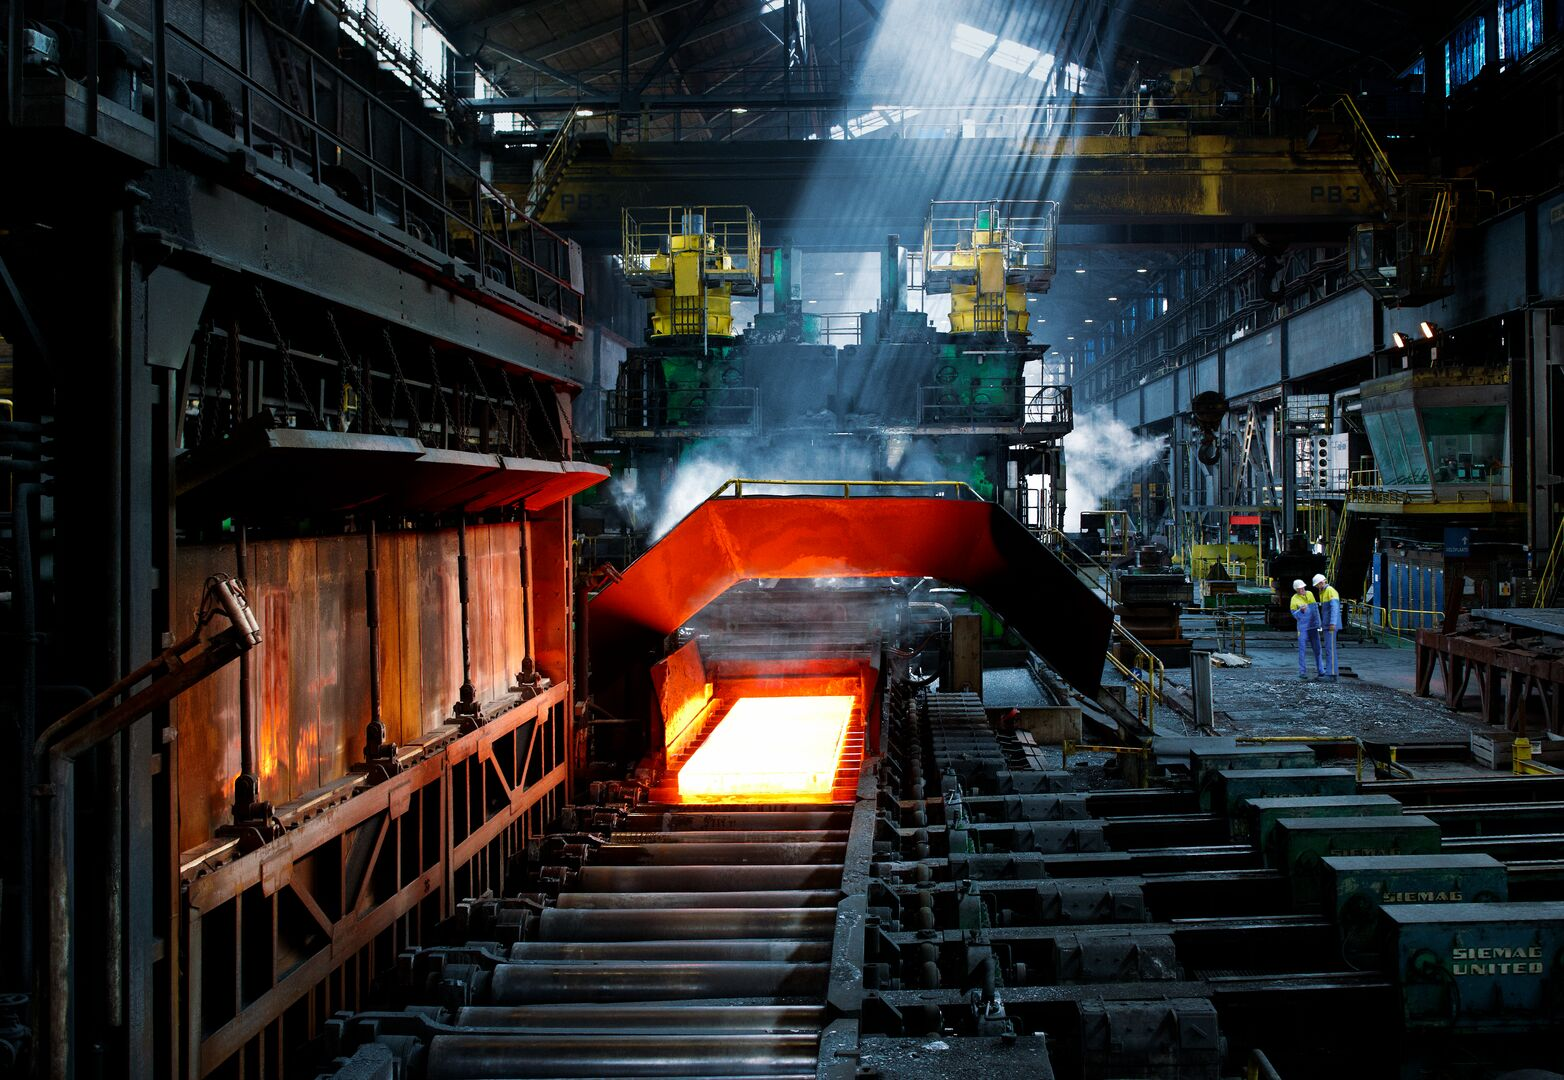 Tat Steel hot mill